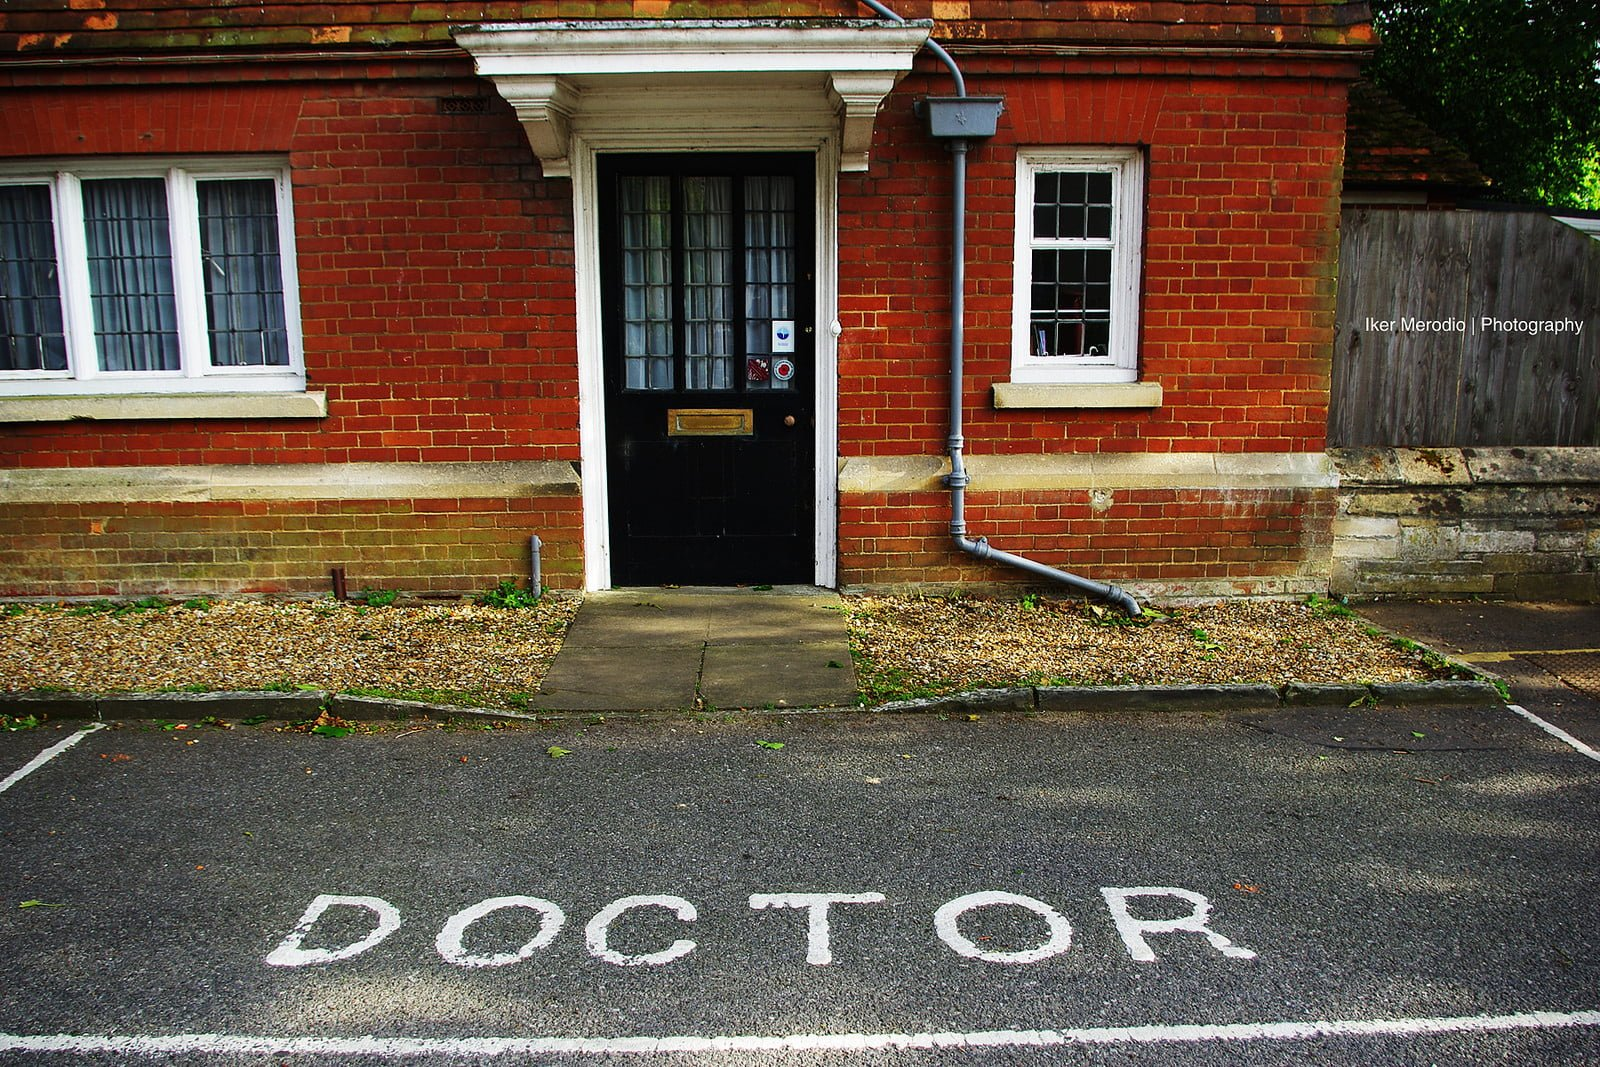 In defence of Victoria's doctors health service